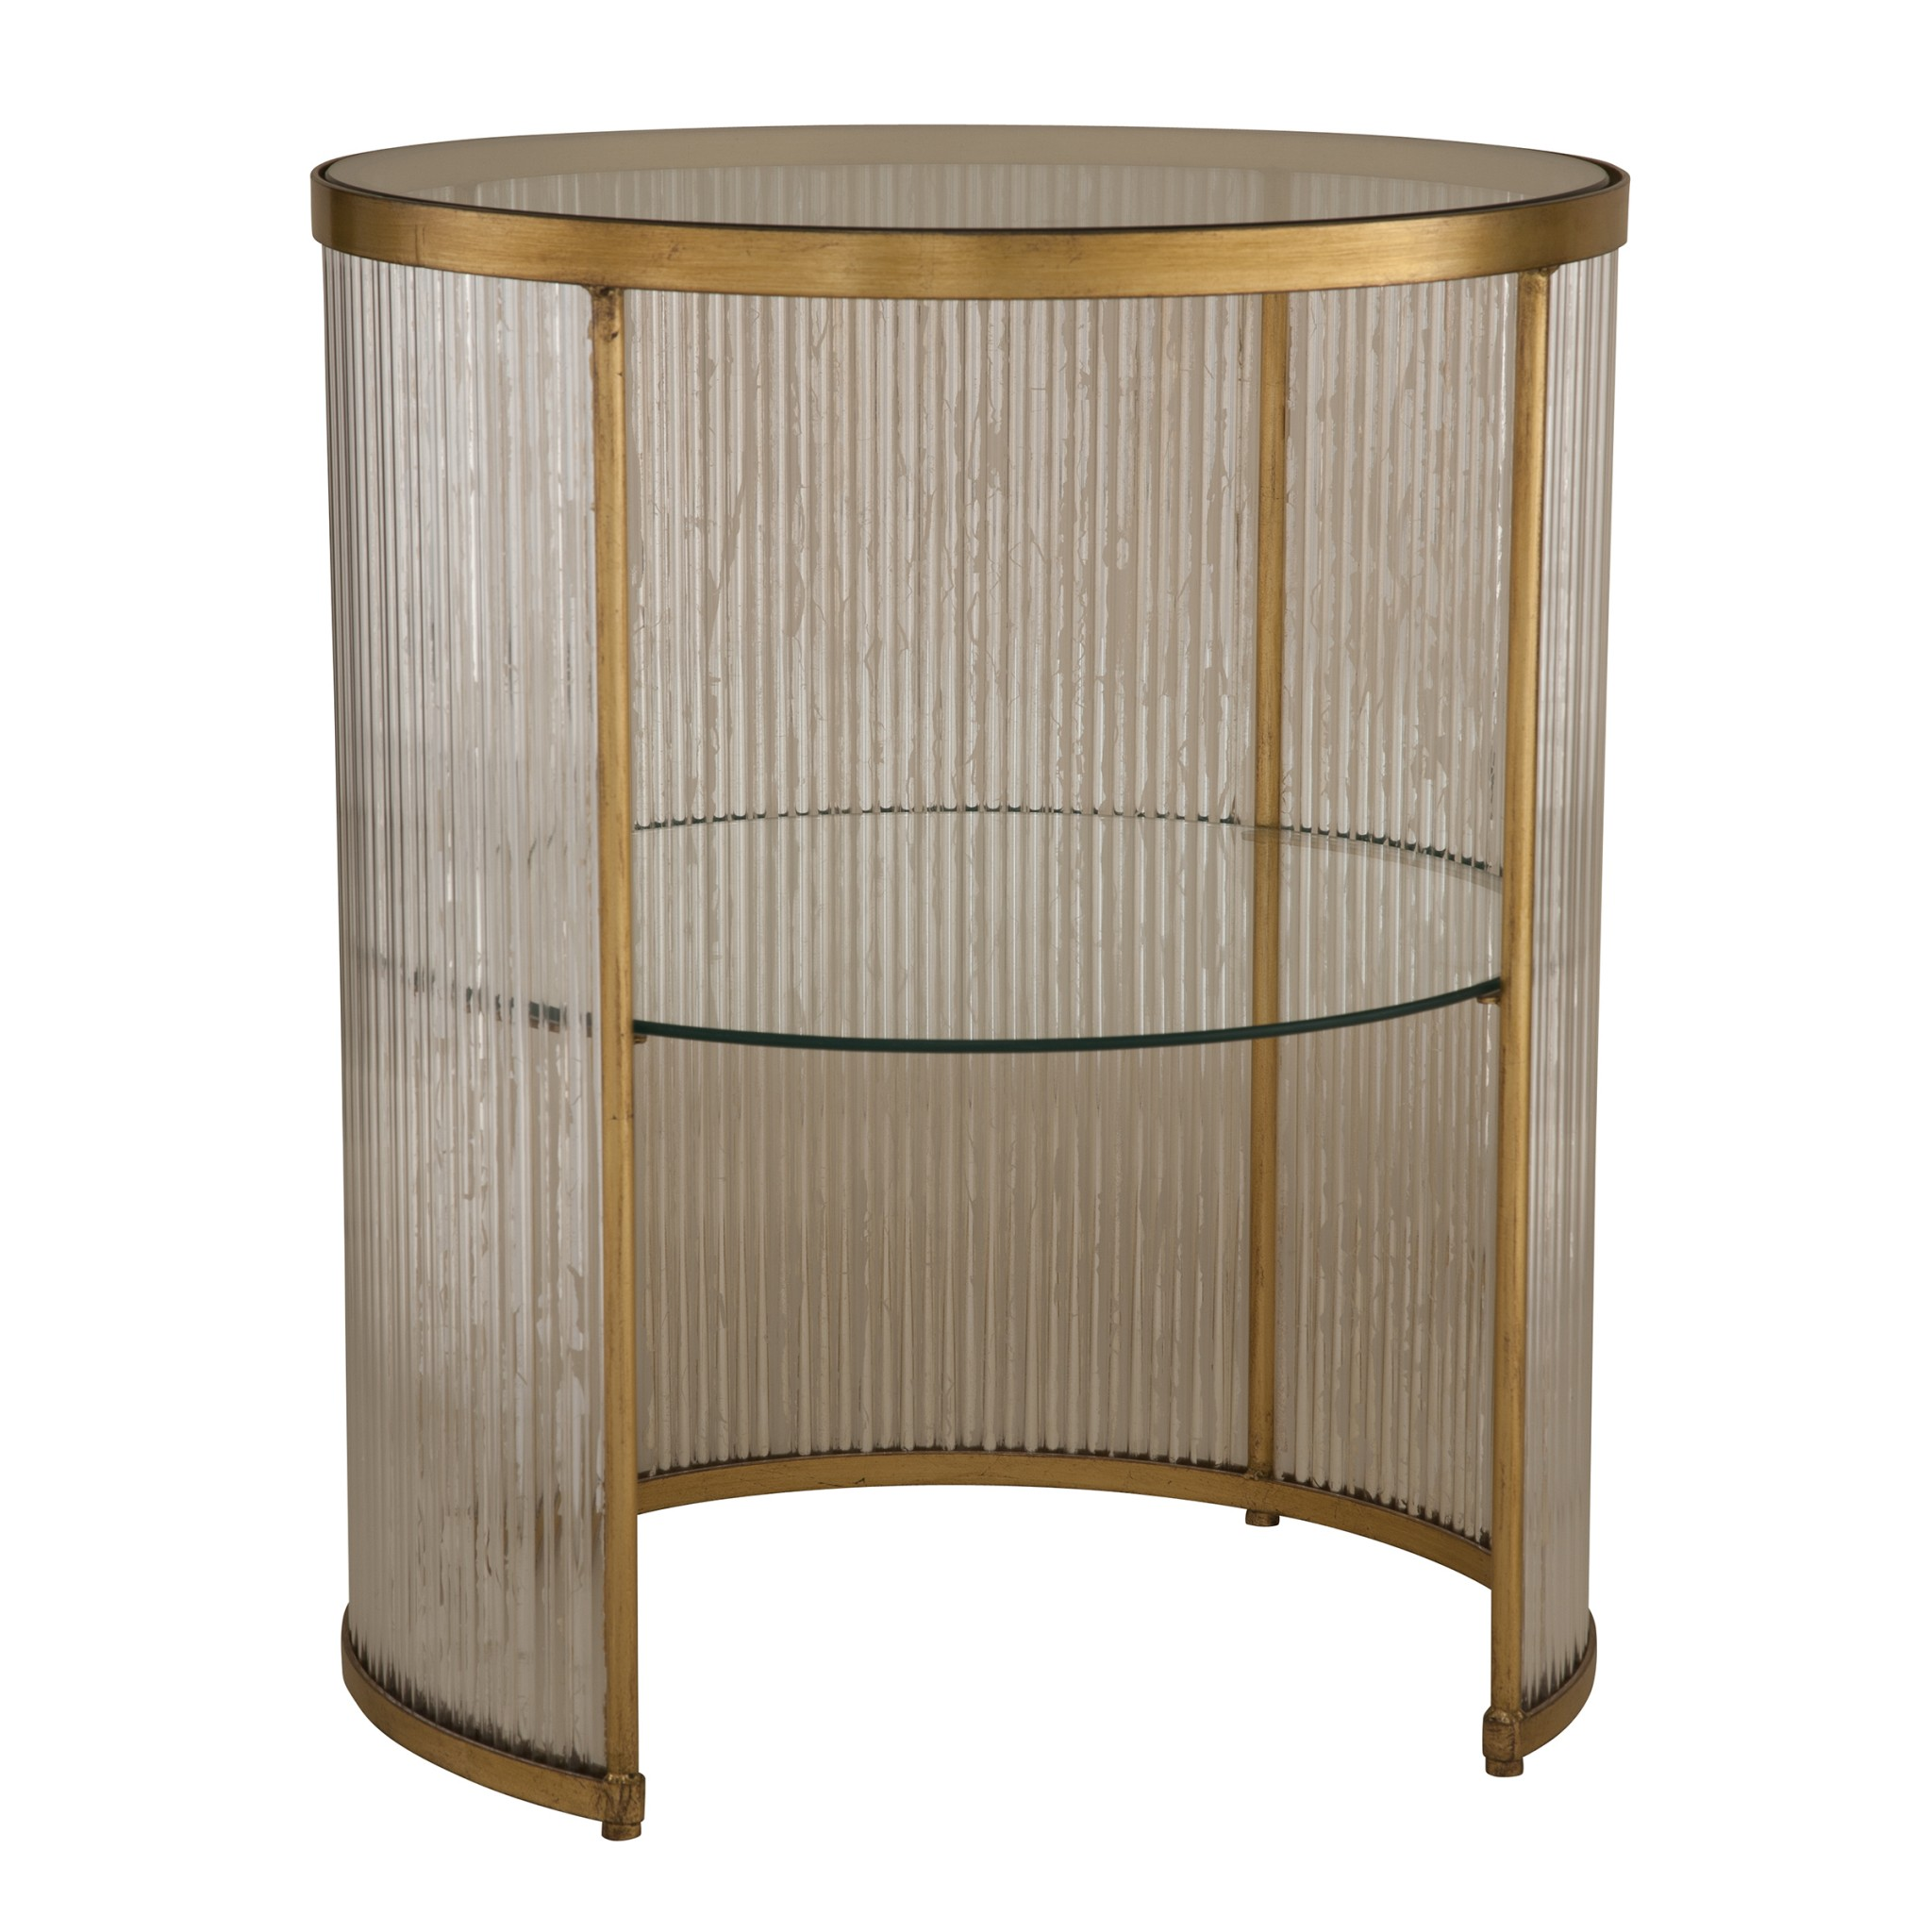 laurin side table niermann weeks gold accent with glass top bedside cabinets porch reclaimed wood end canvas umbrella tablecloth for dining gray recliner modern furniture houston